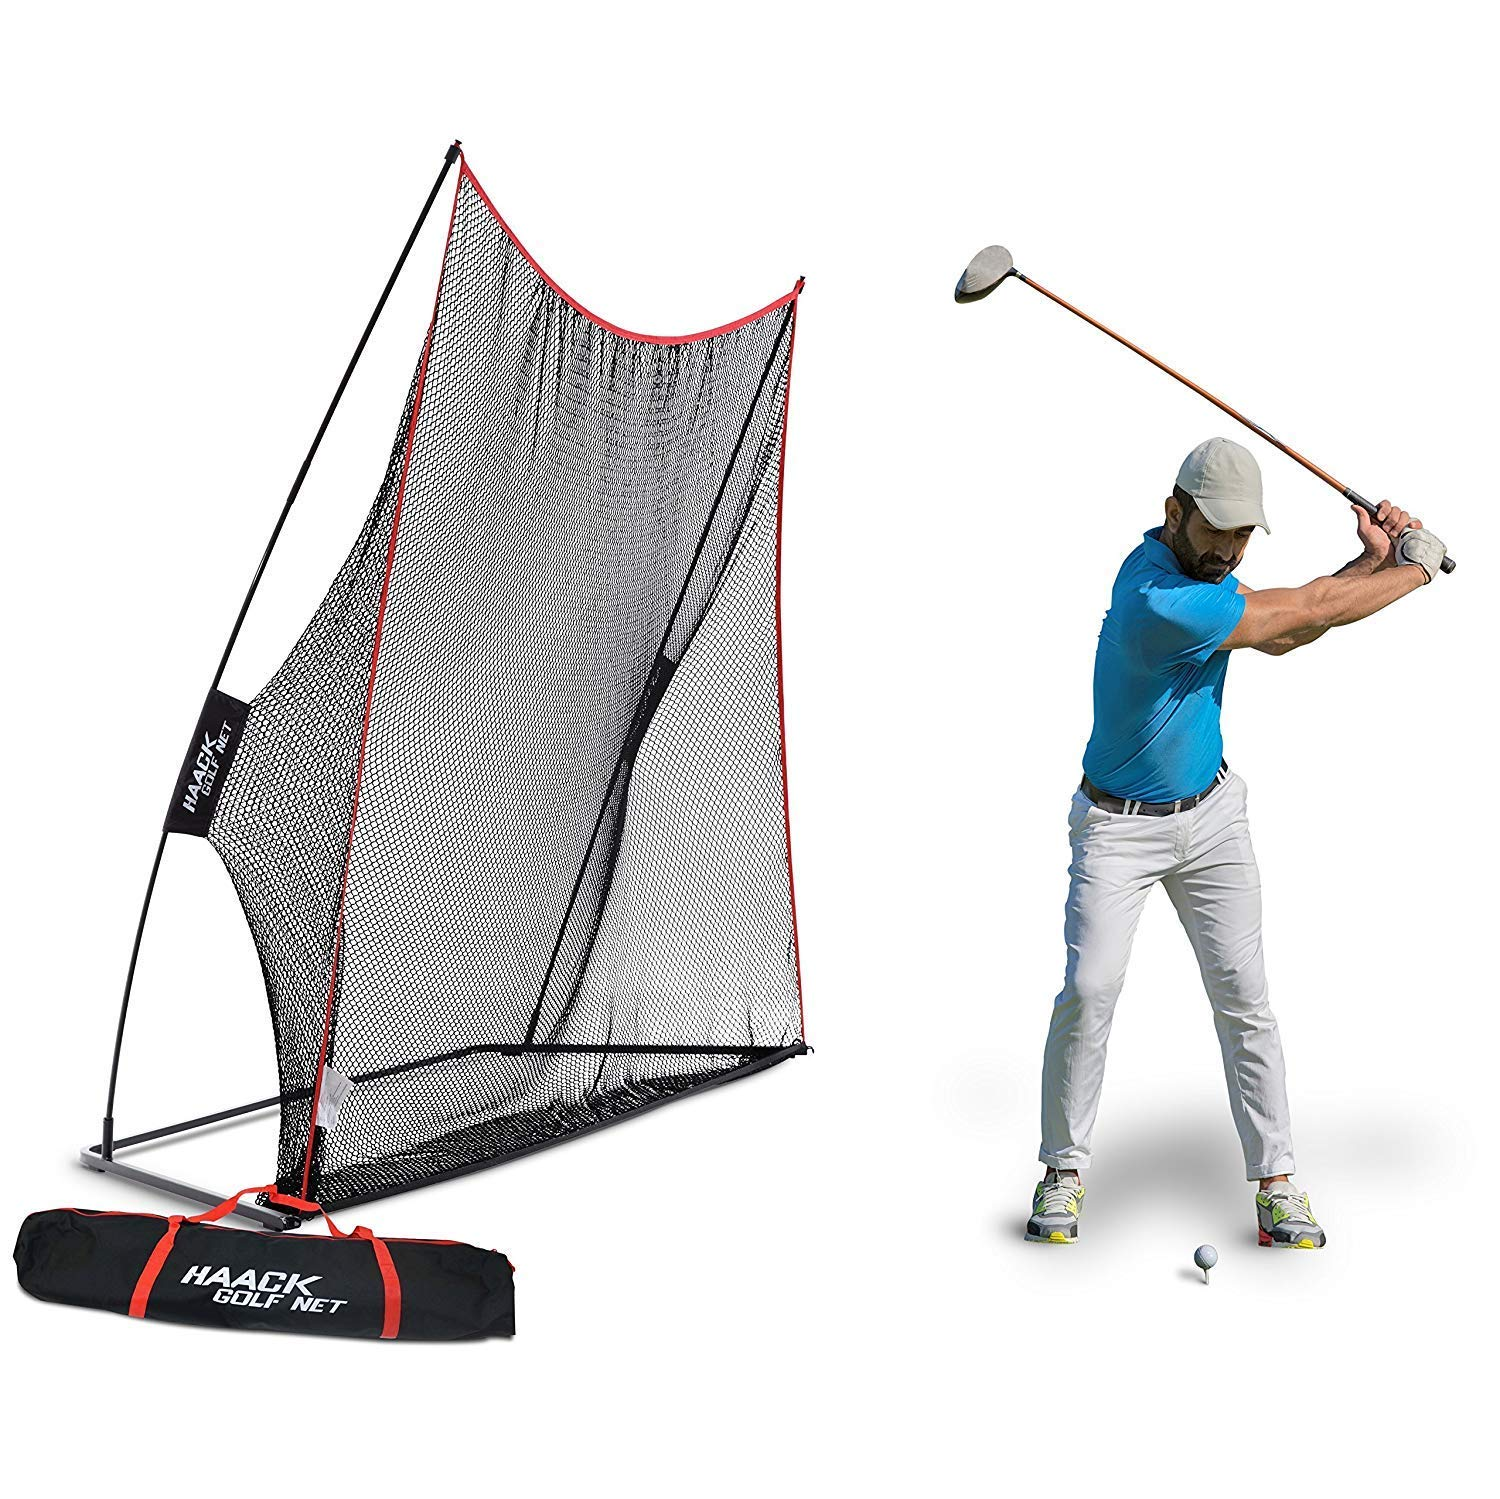 Rukket 10x7ft Haack Golf Net | Practice Driving Indoor and Outdoor | Golfing at Home Swing Training Aids | by SEC Coach Chris Haack by Rukket Sports